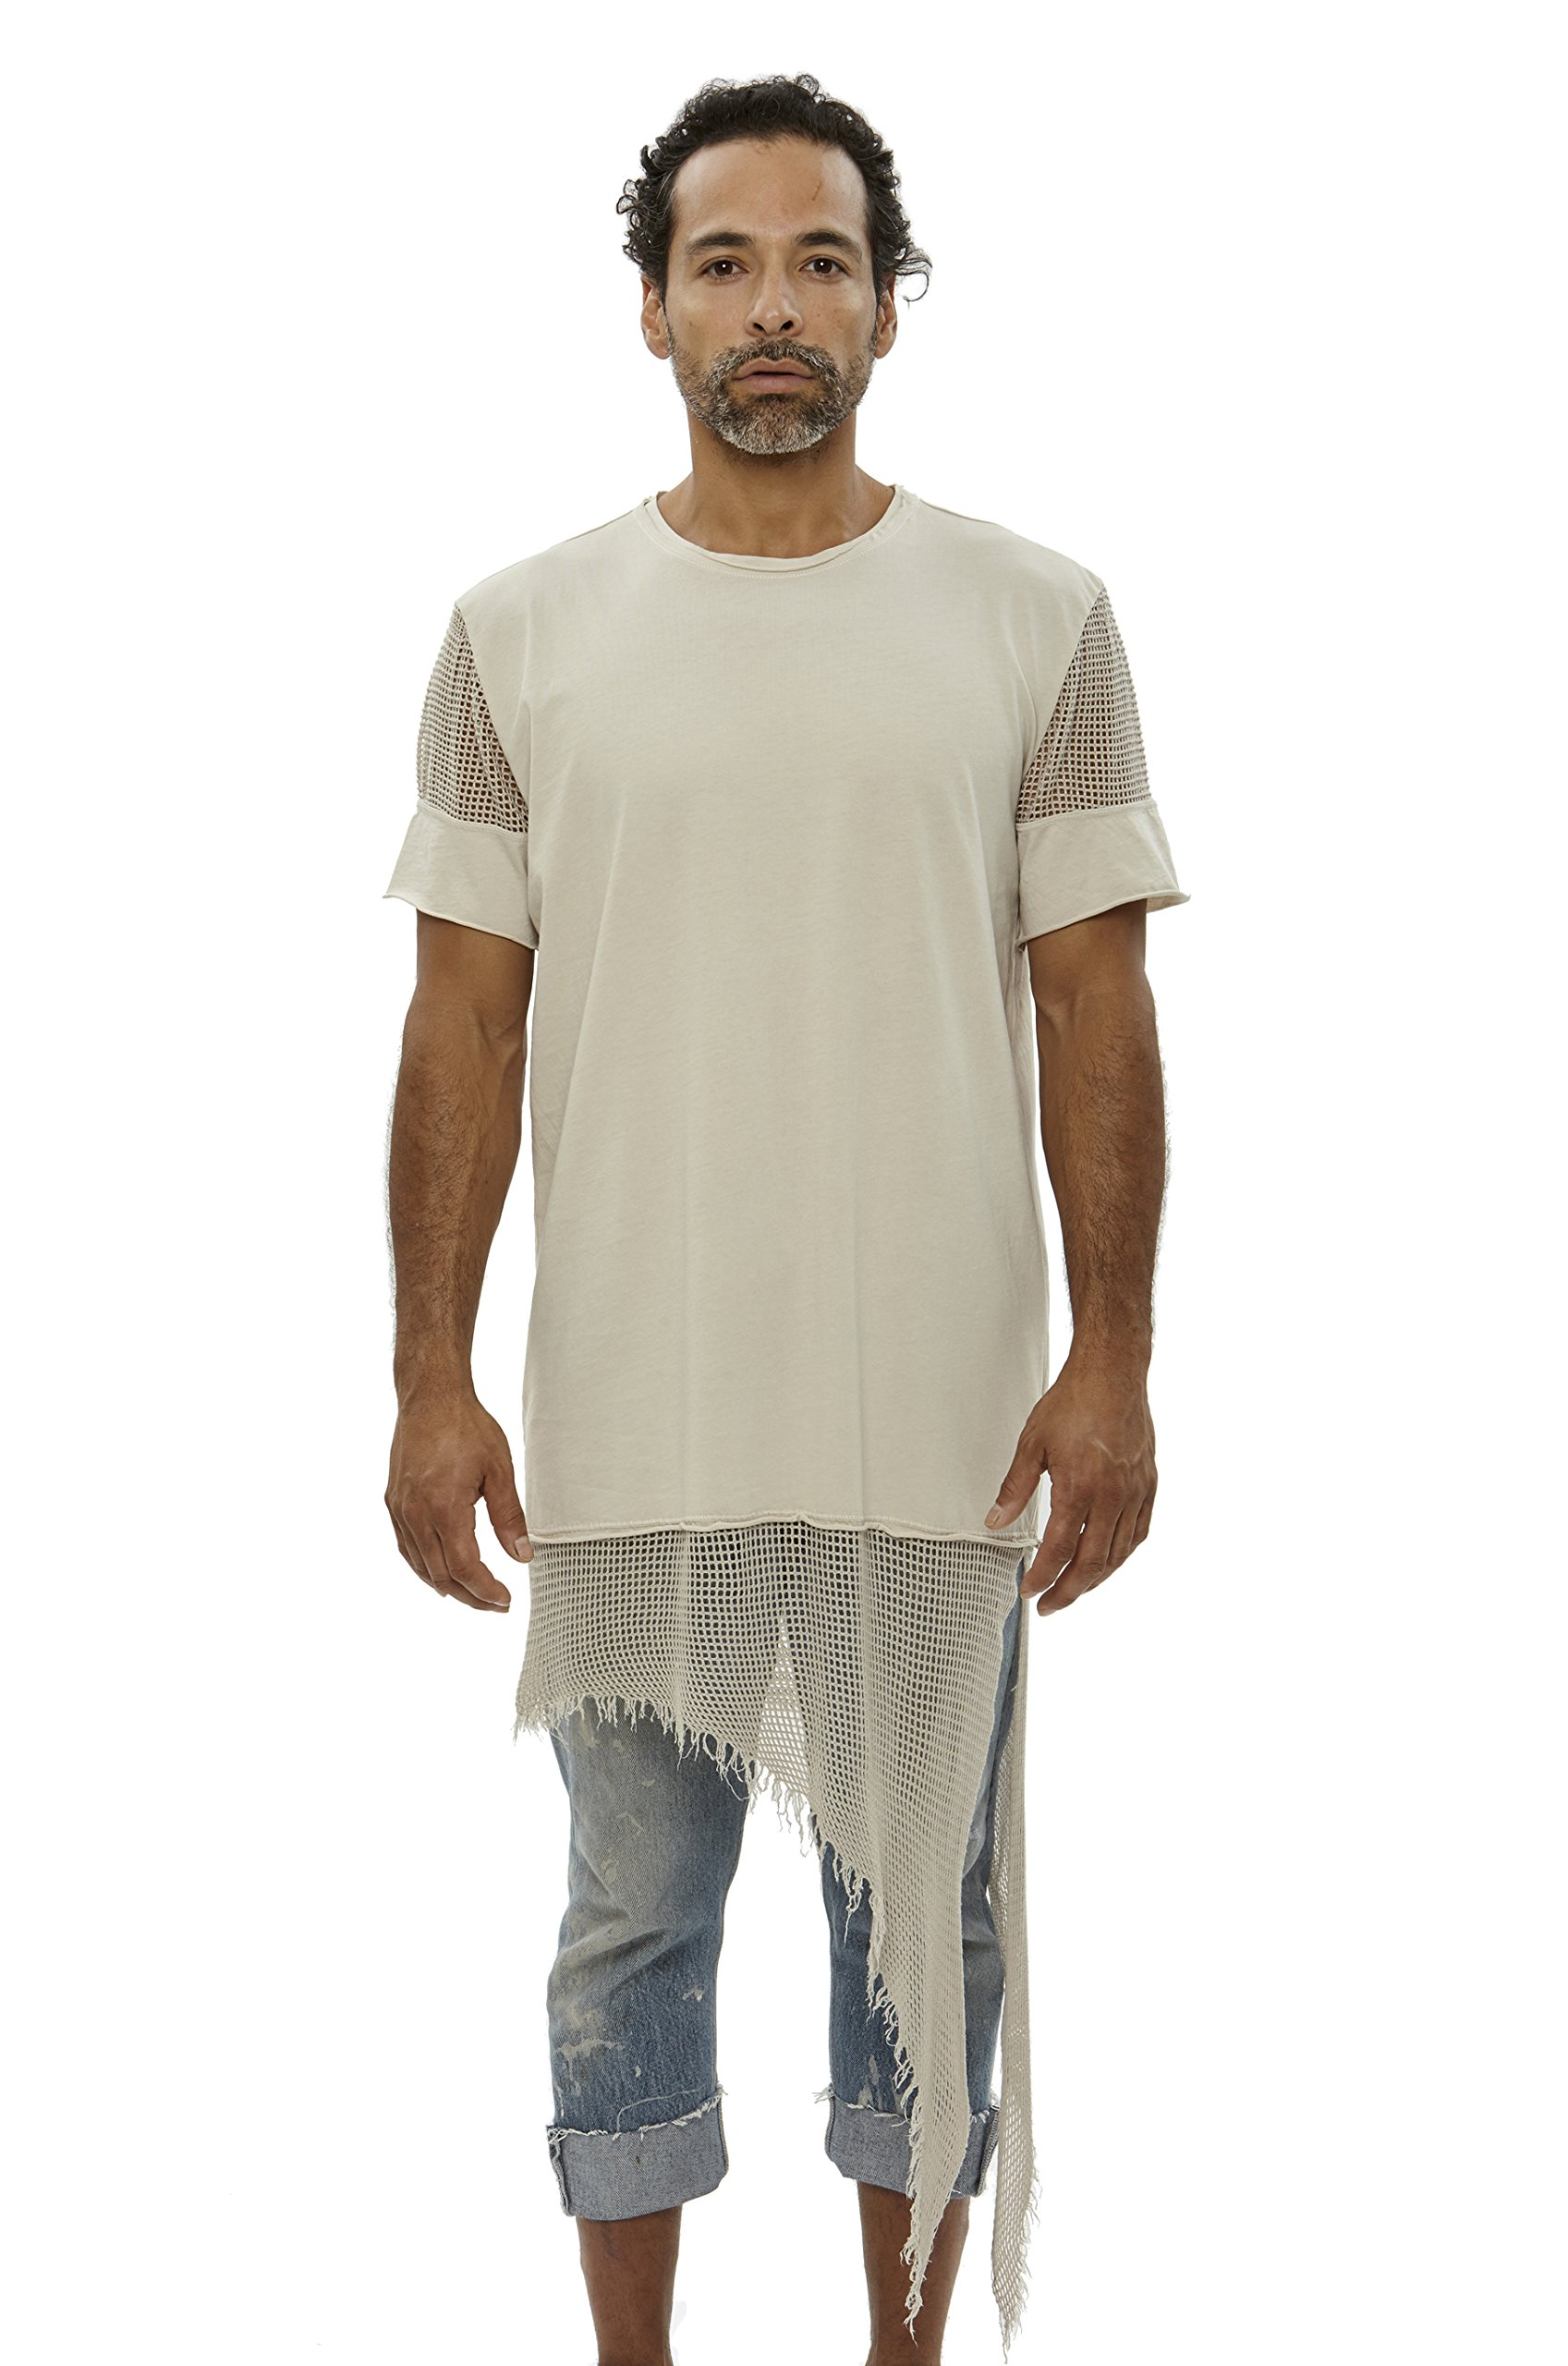 UNCOMMON THRDS Mens Top: Short Sleeve Jersey Elongated Asymmetric Hem With Mesh Contrast Panels Sunfade - S